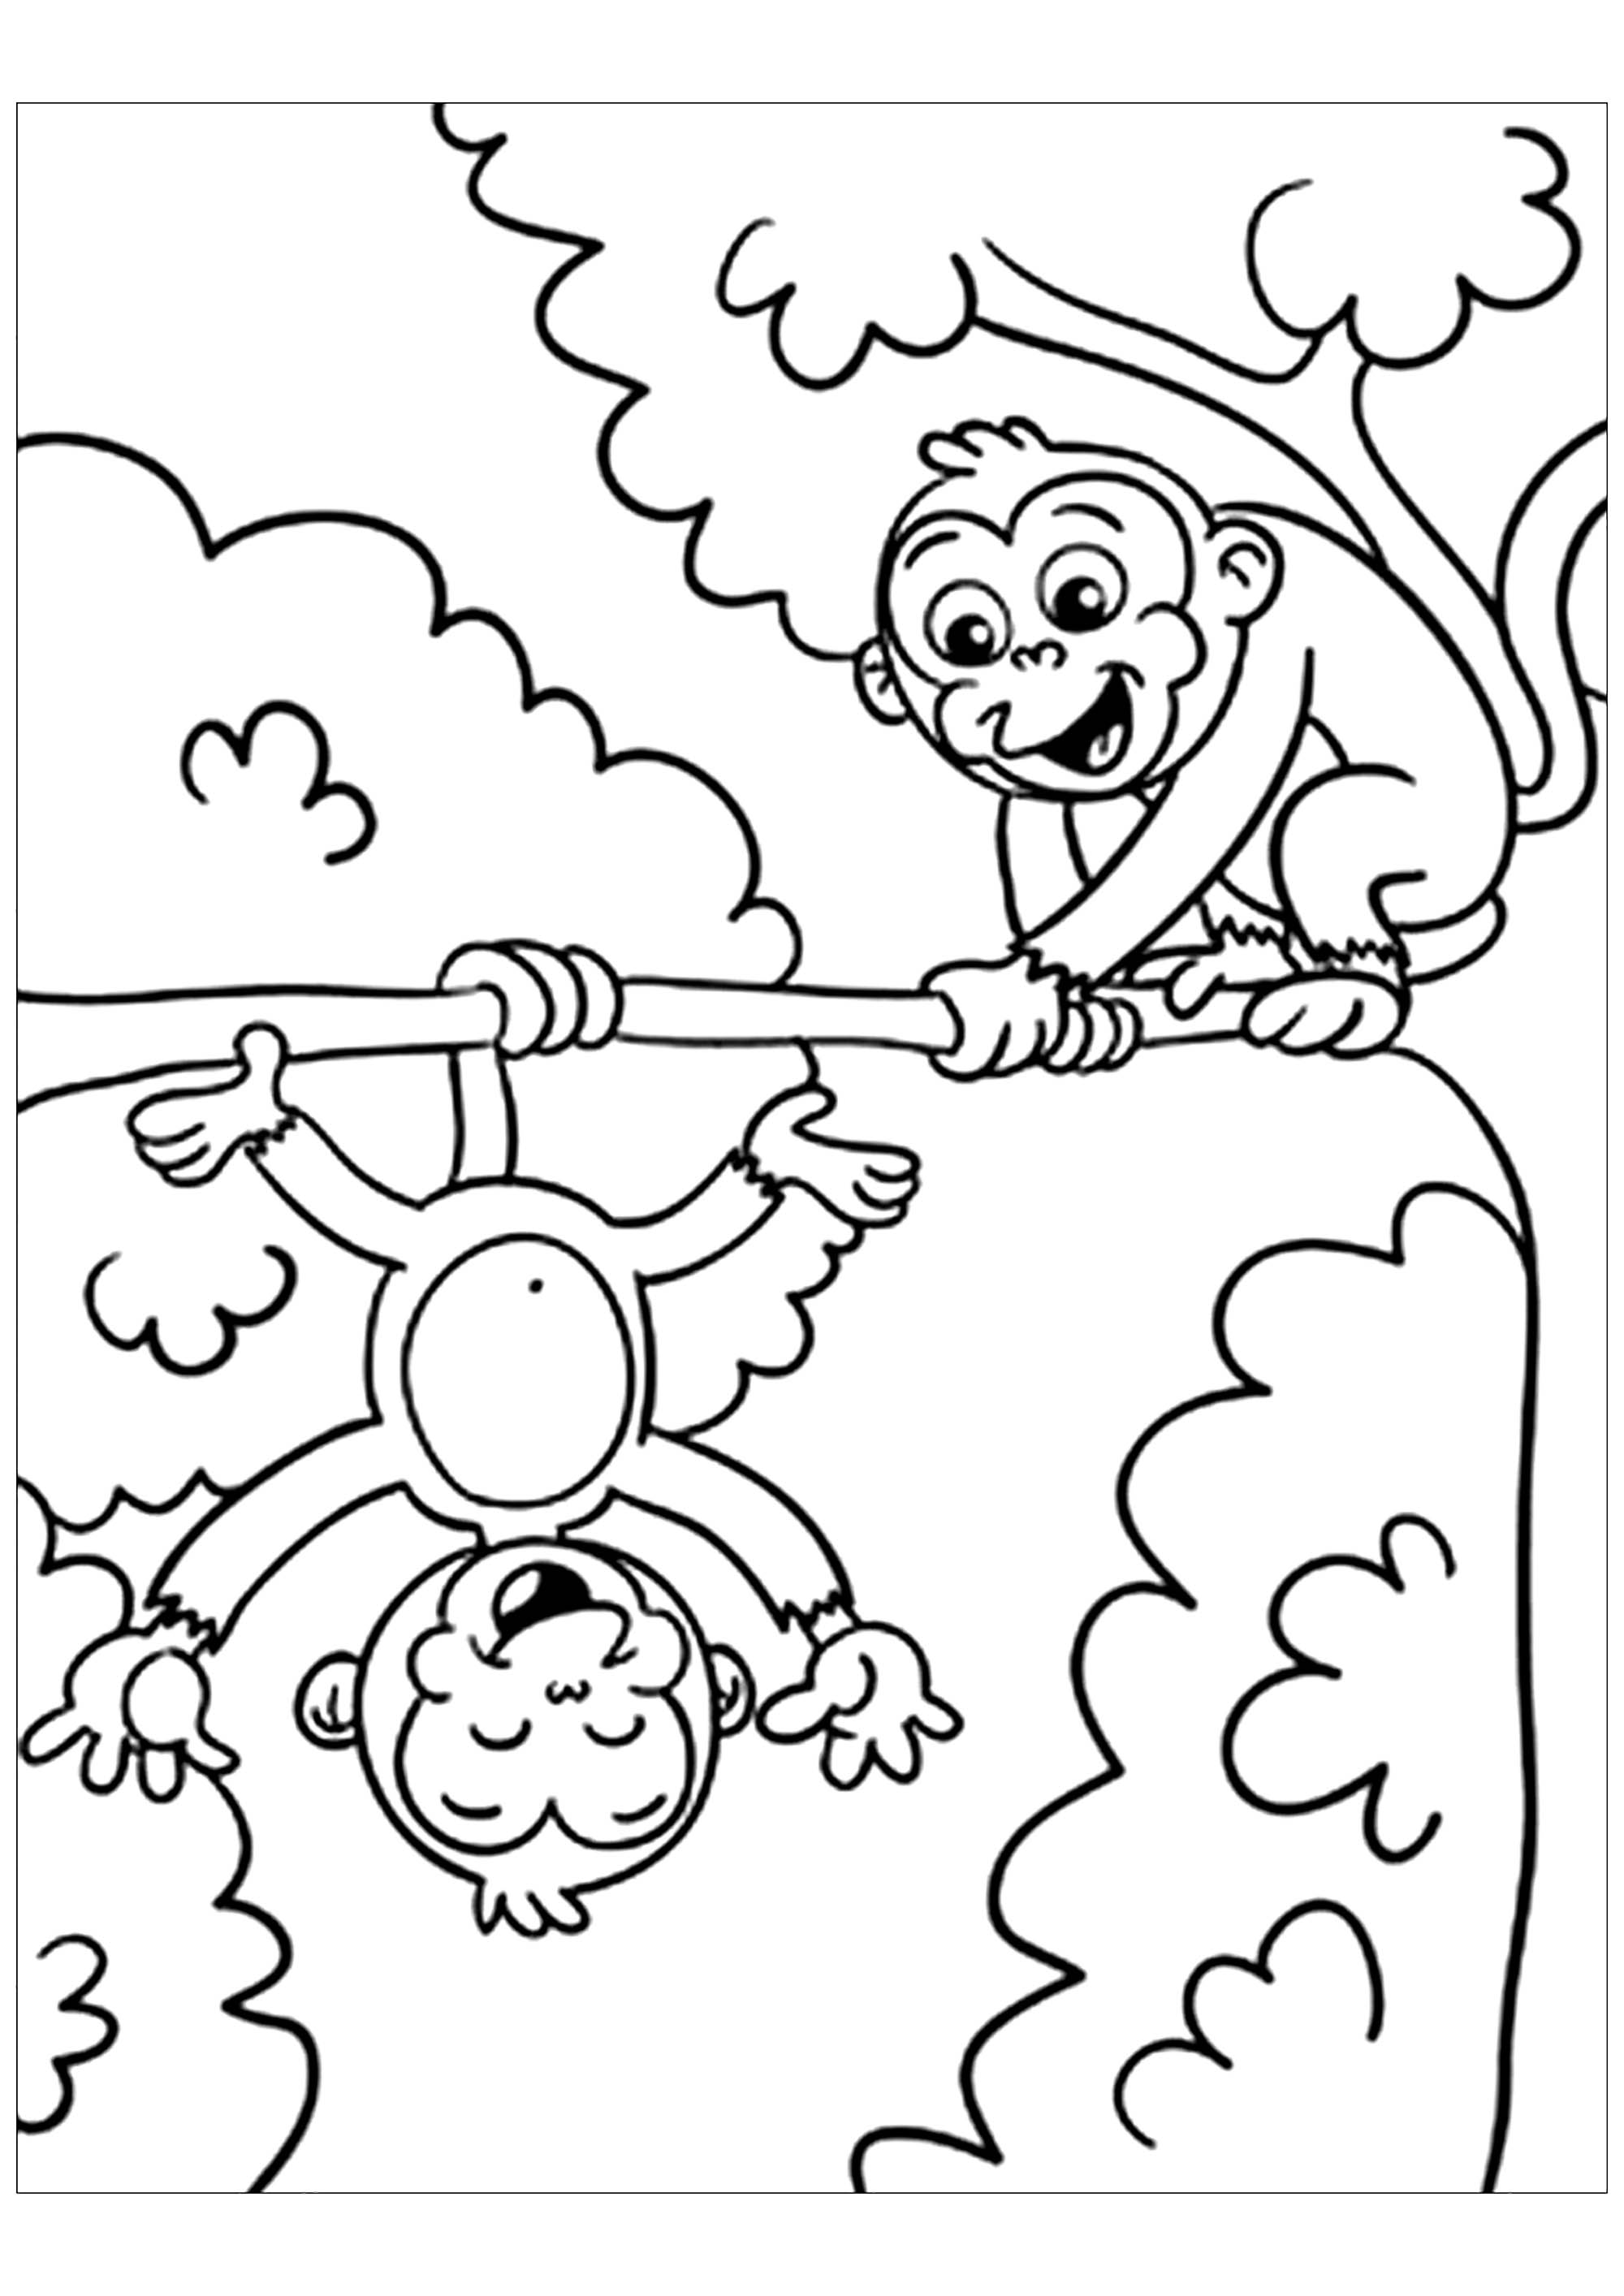 monkey pictures for coloring baby monkey coloring pages to download and print for free monkey for coloring pictures